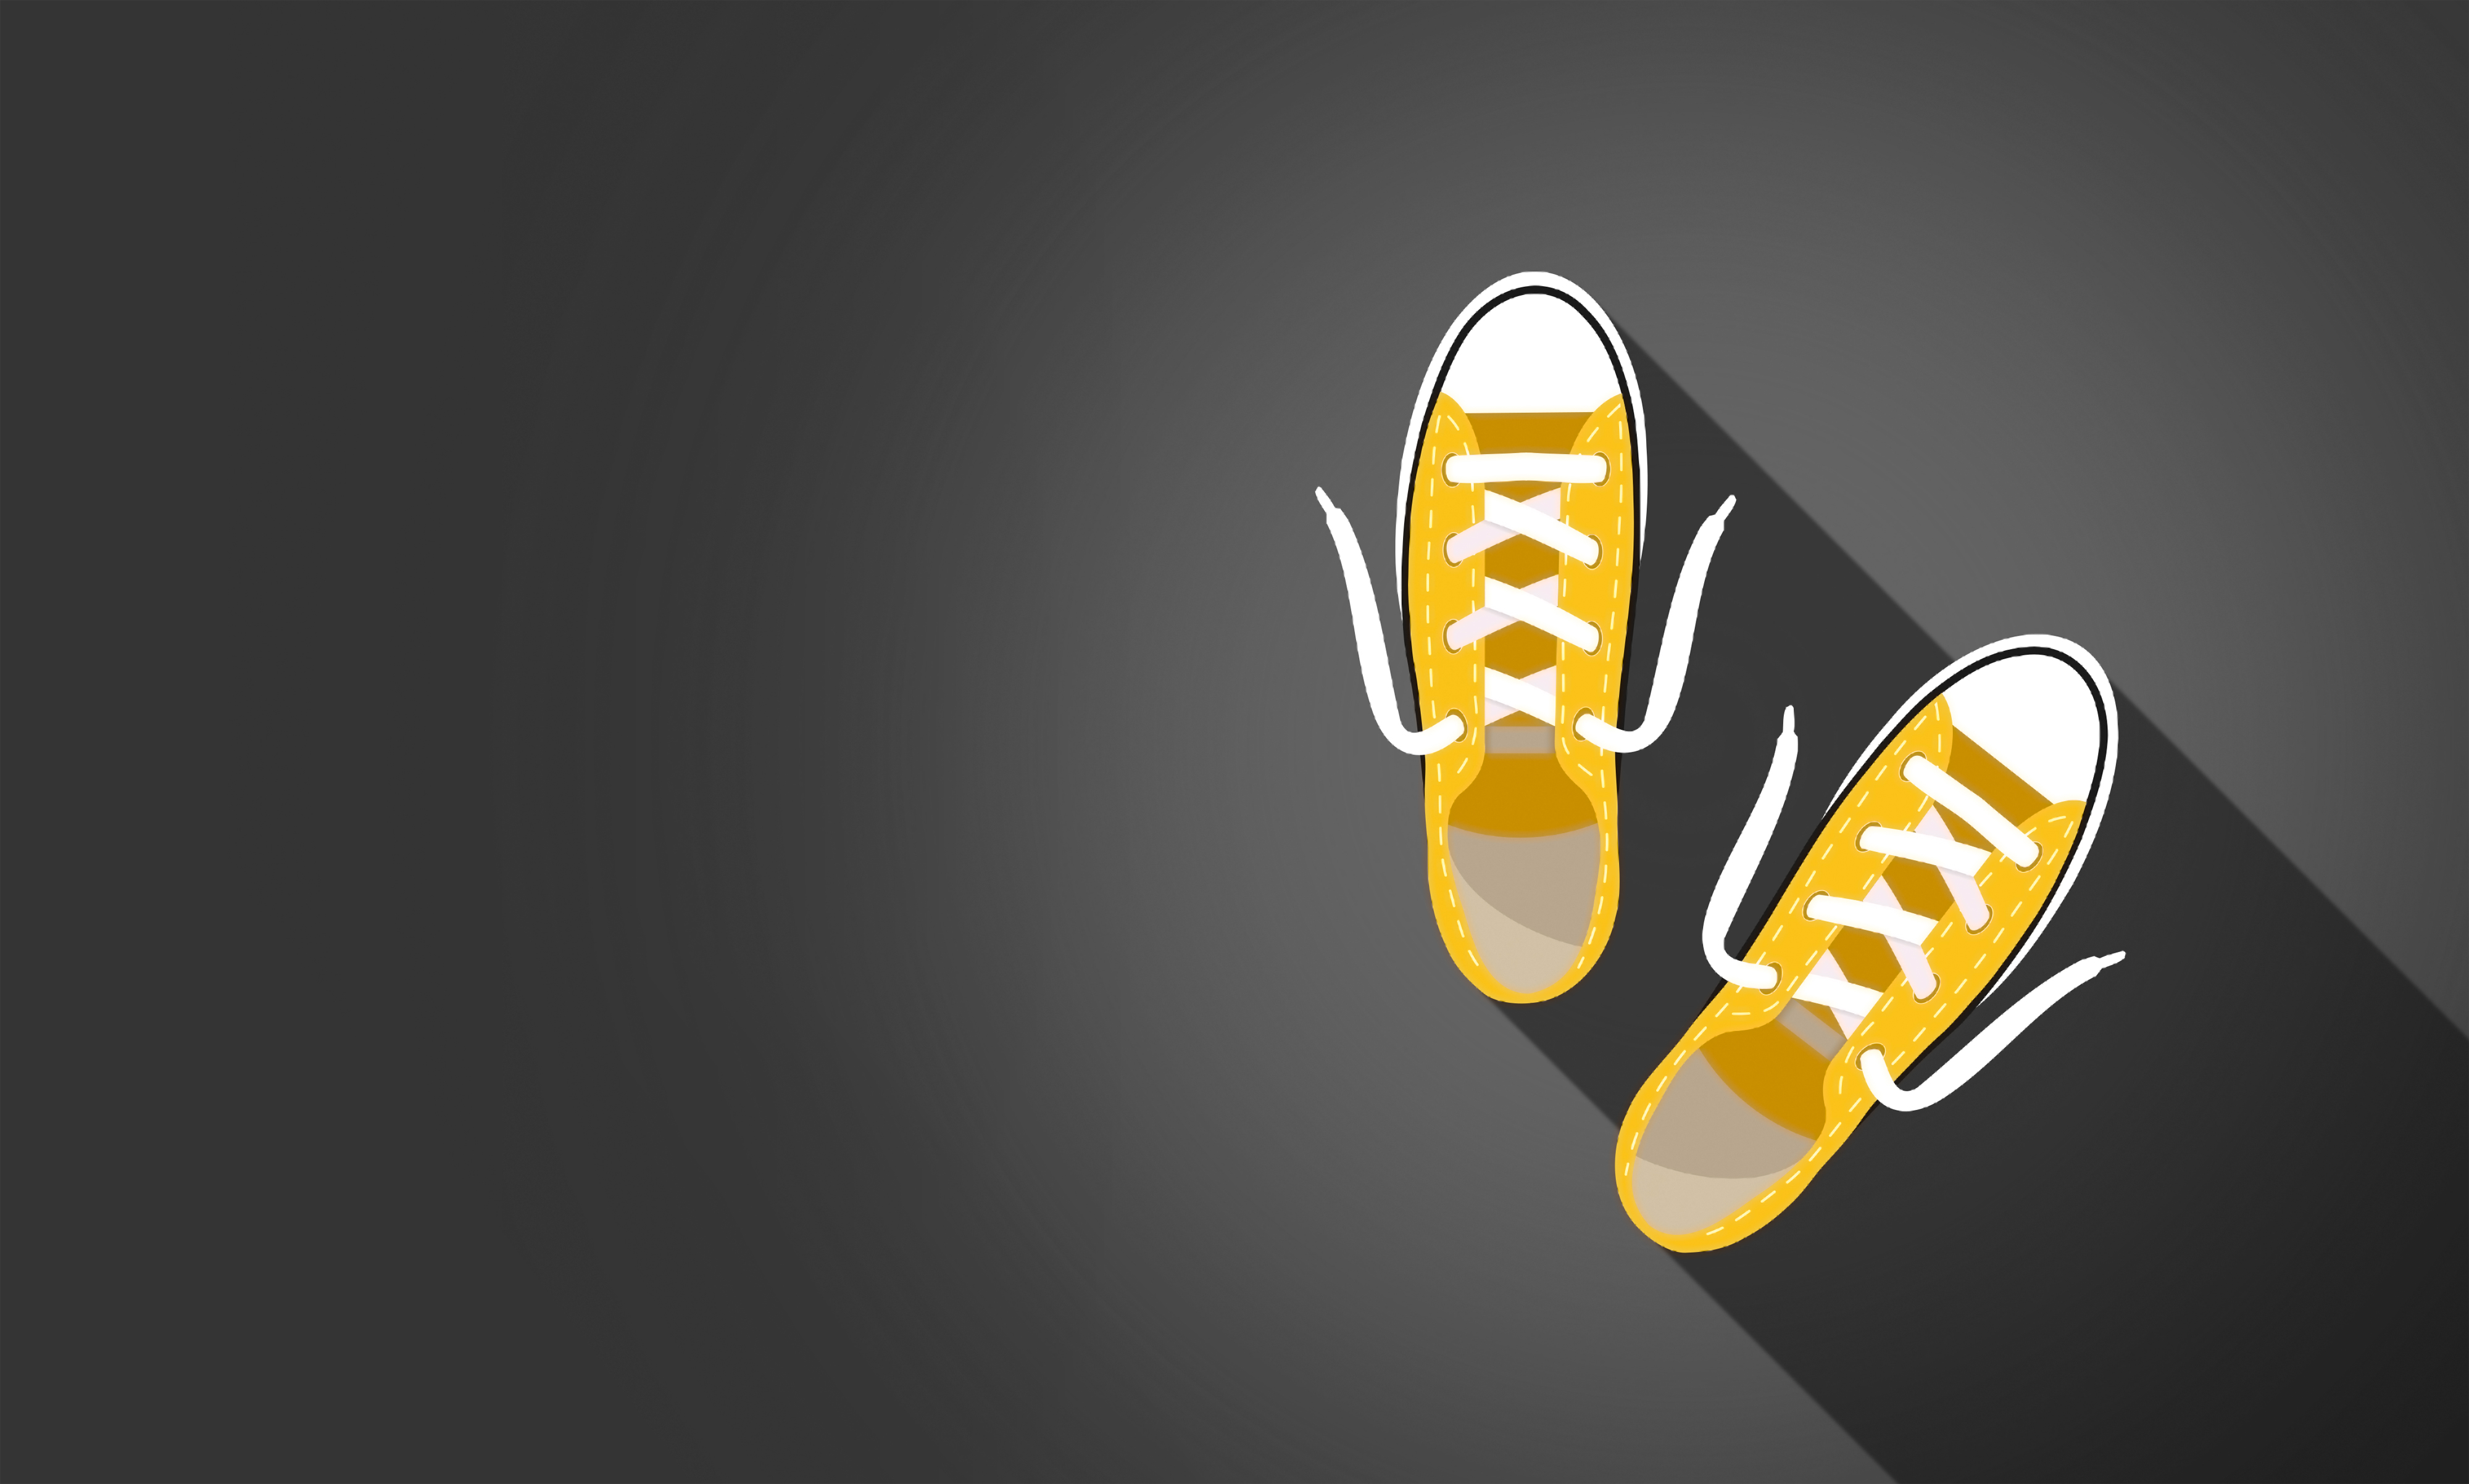 Yellow Sneakers on Dark Background - With Copyspace, Abstract, Retro, Sign, Shoes, HQ Photo